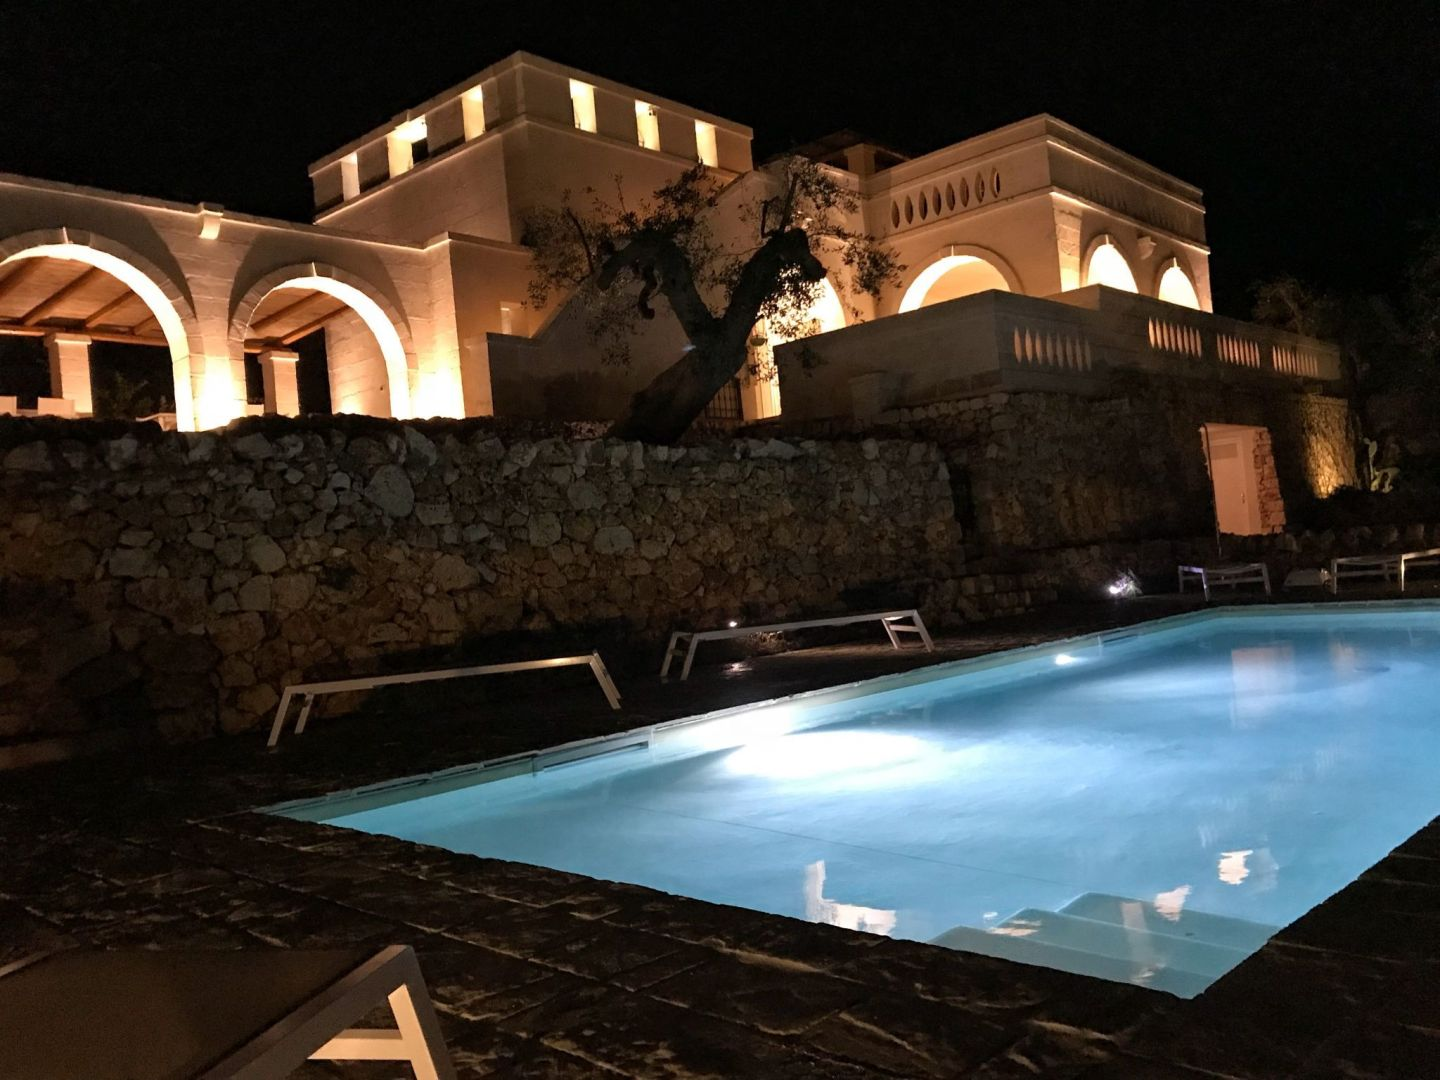 Corte dei Massapi villa at night